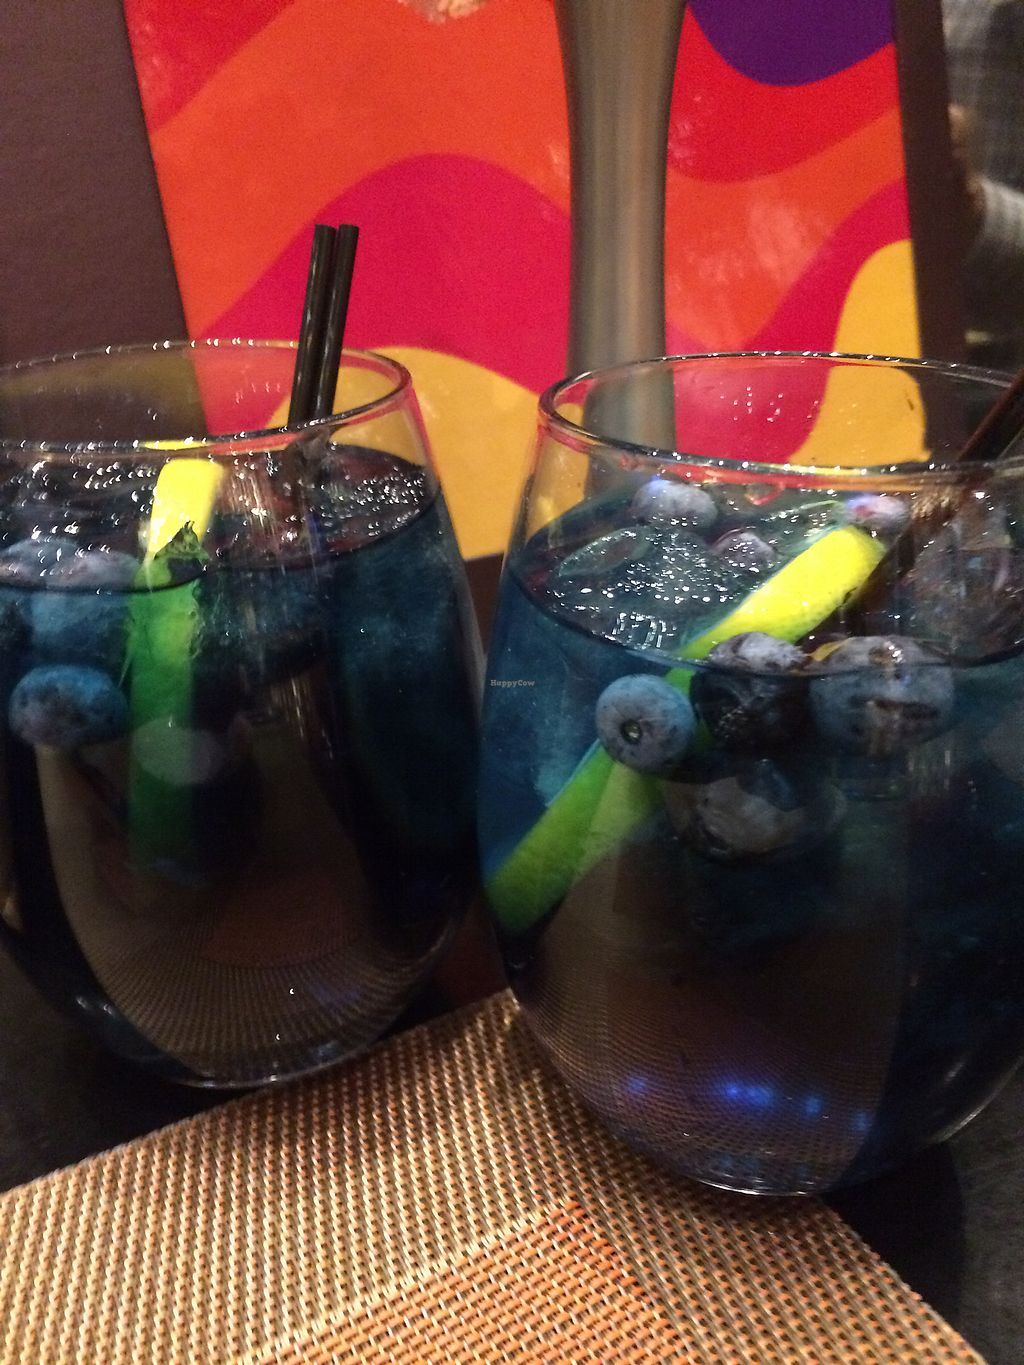 """Photo of Aria Hotel - Julian Serrano Tapas  by <a href=""""/members/profile/MitziFox"""">MitziFox</a> <br/>Blue Sangria <br/> March 5, 2018  - <a href='/contact/abuse/image/67715/366963'>Report</a>"""